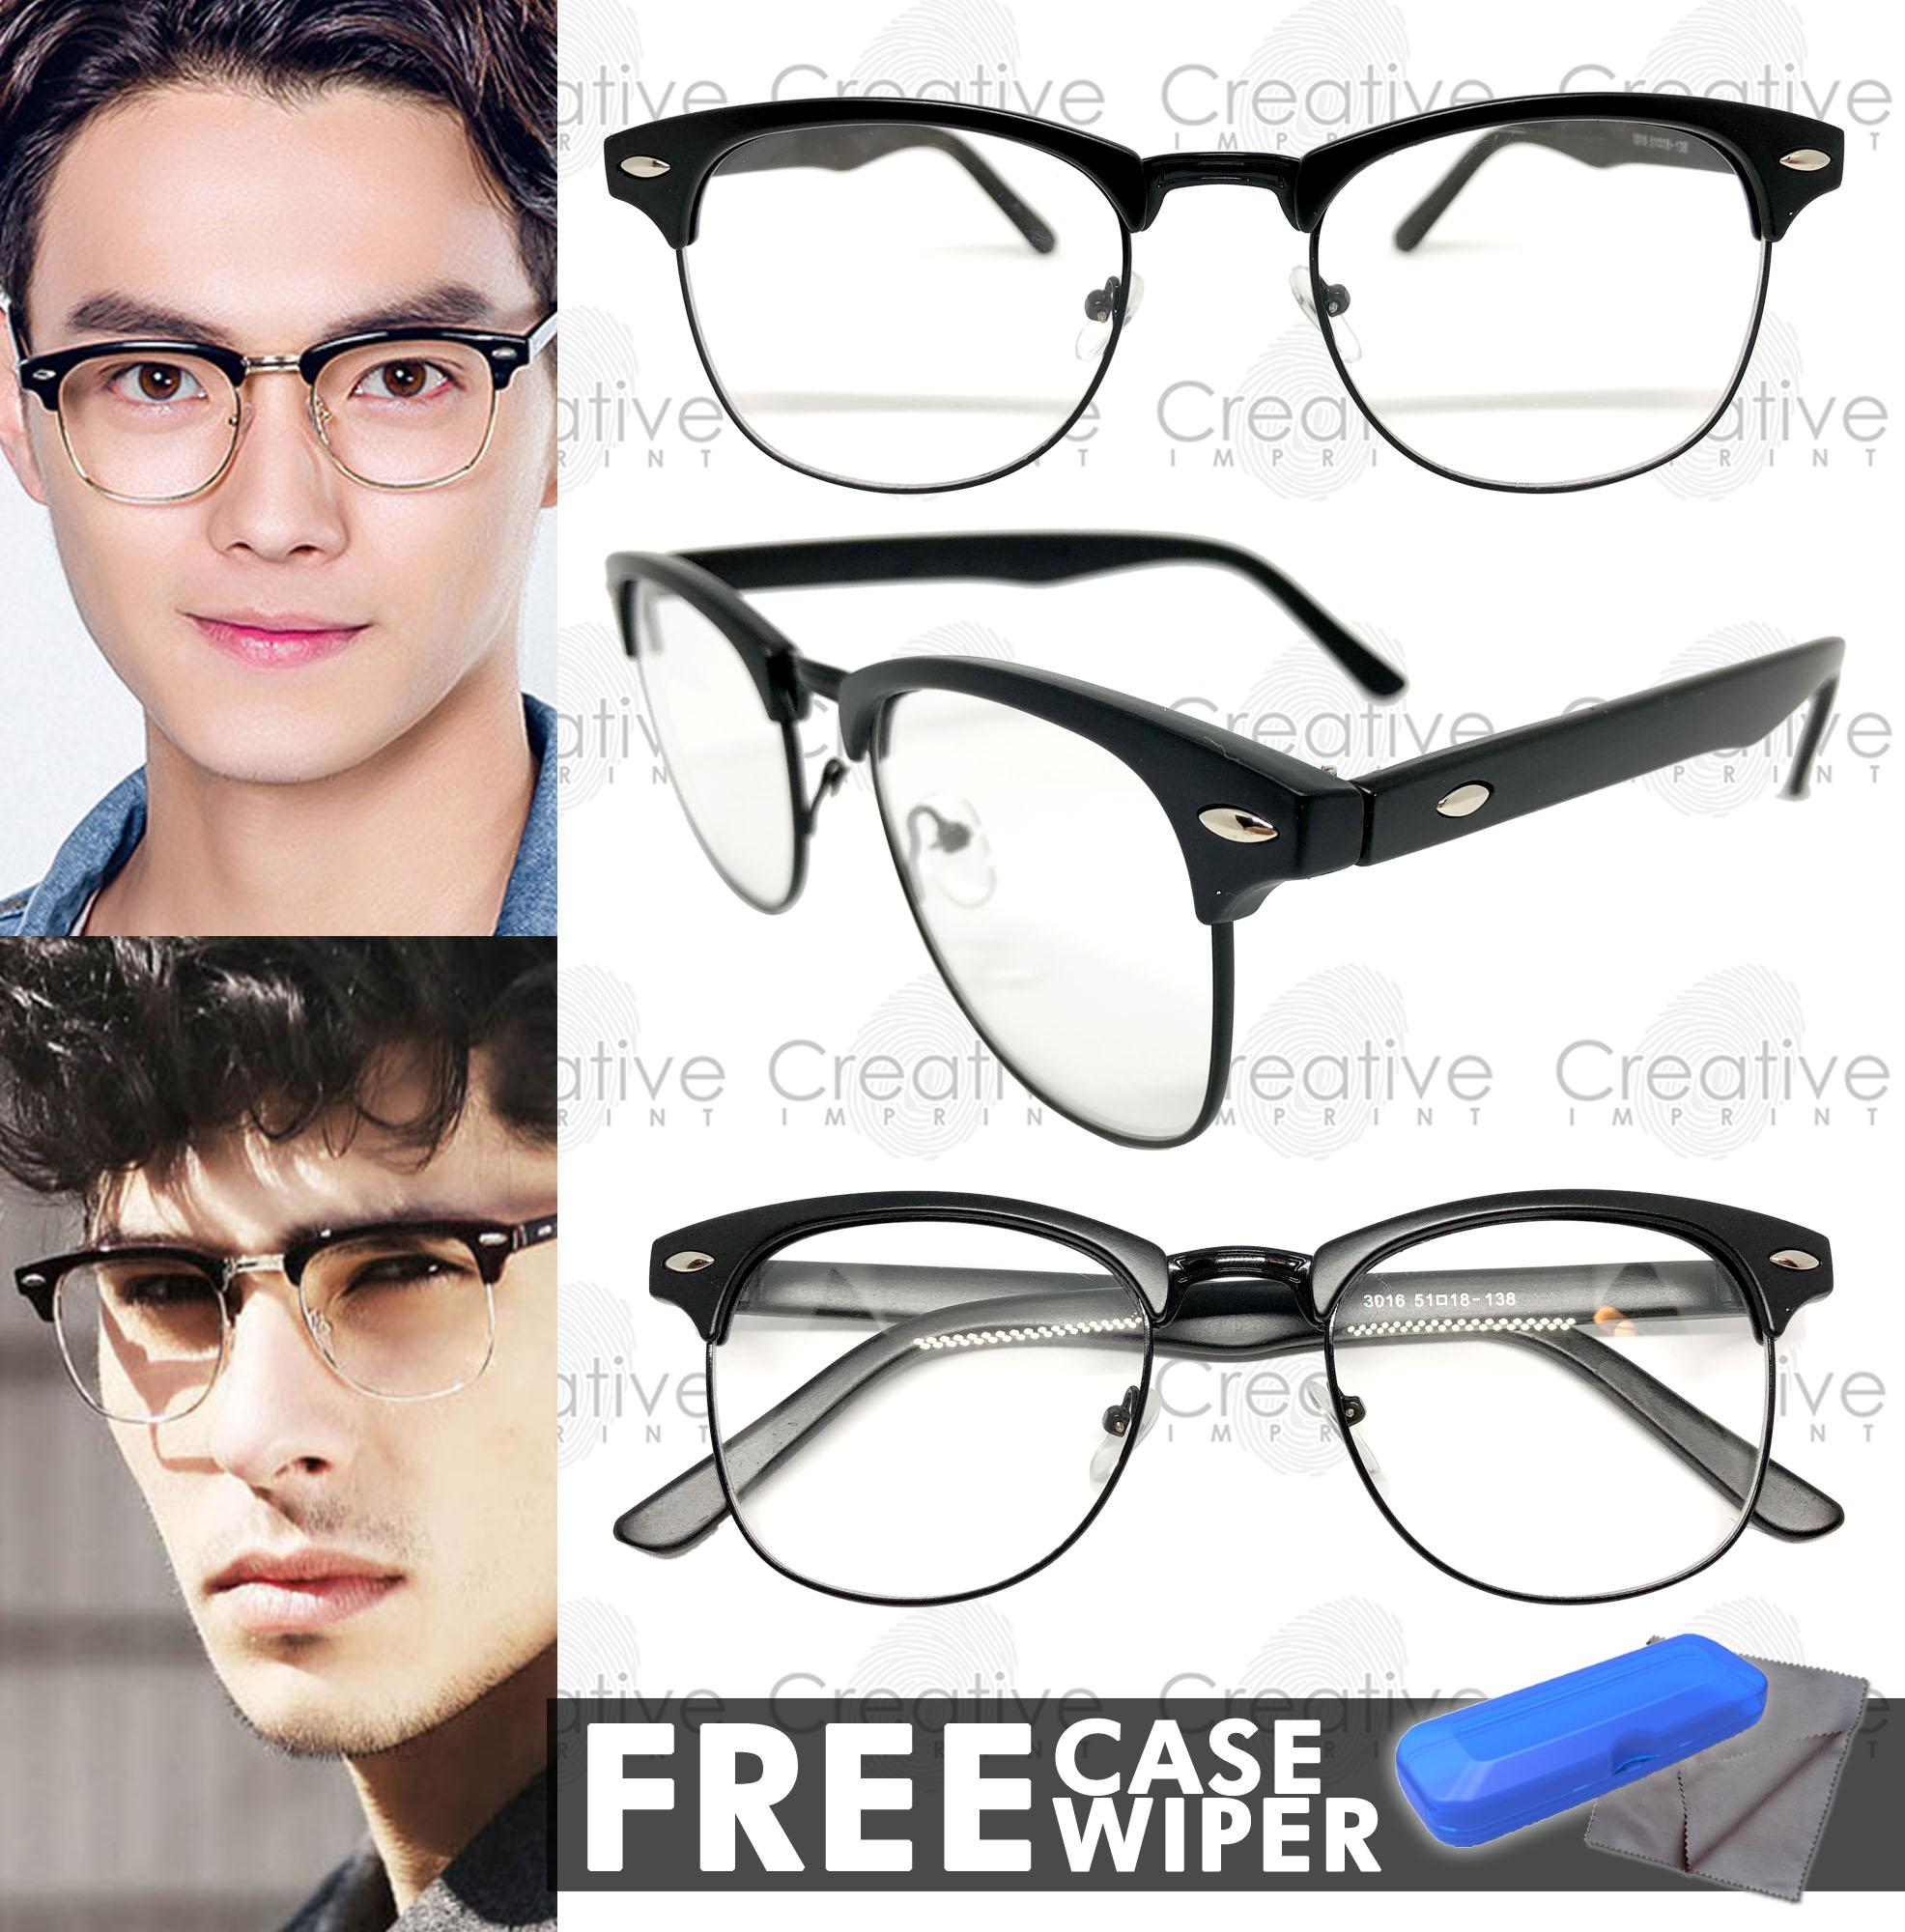 217269d48e6 Creative Imprint Eyeglasses Replaceable Lens Clubmaster  01 Premium High  Quality Specs Metal Korean Style Computer